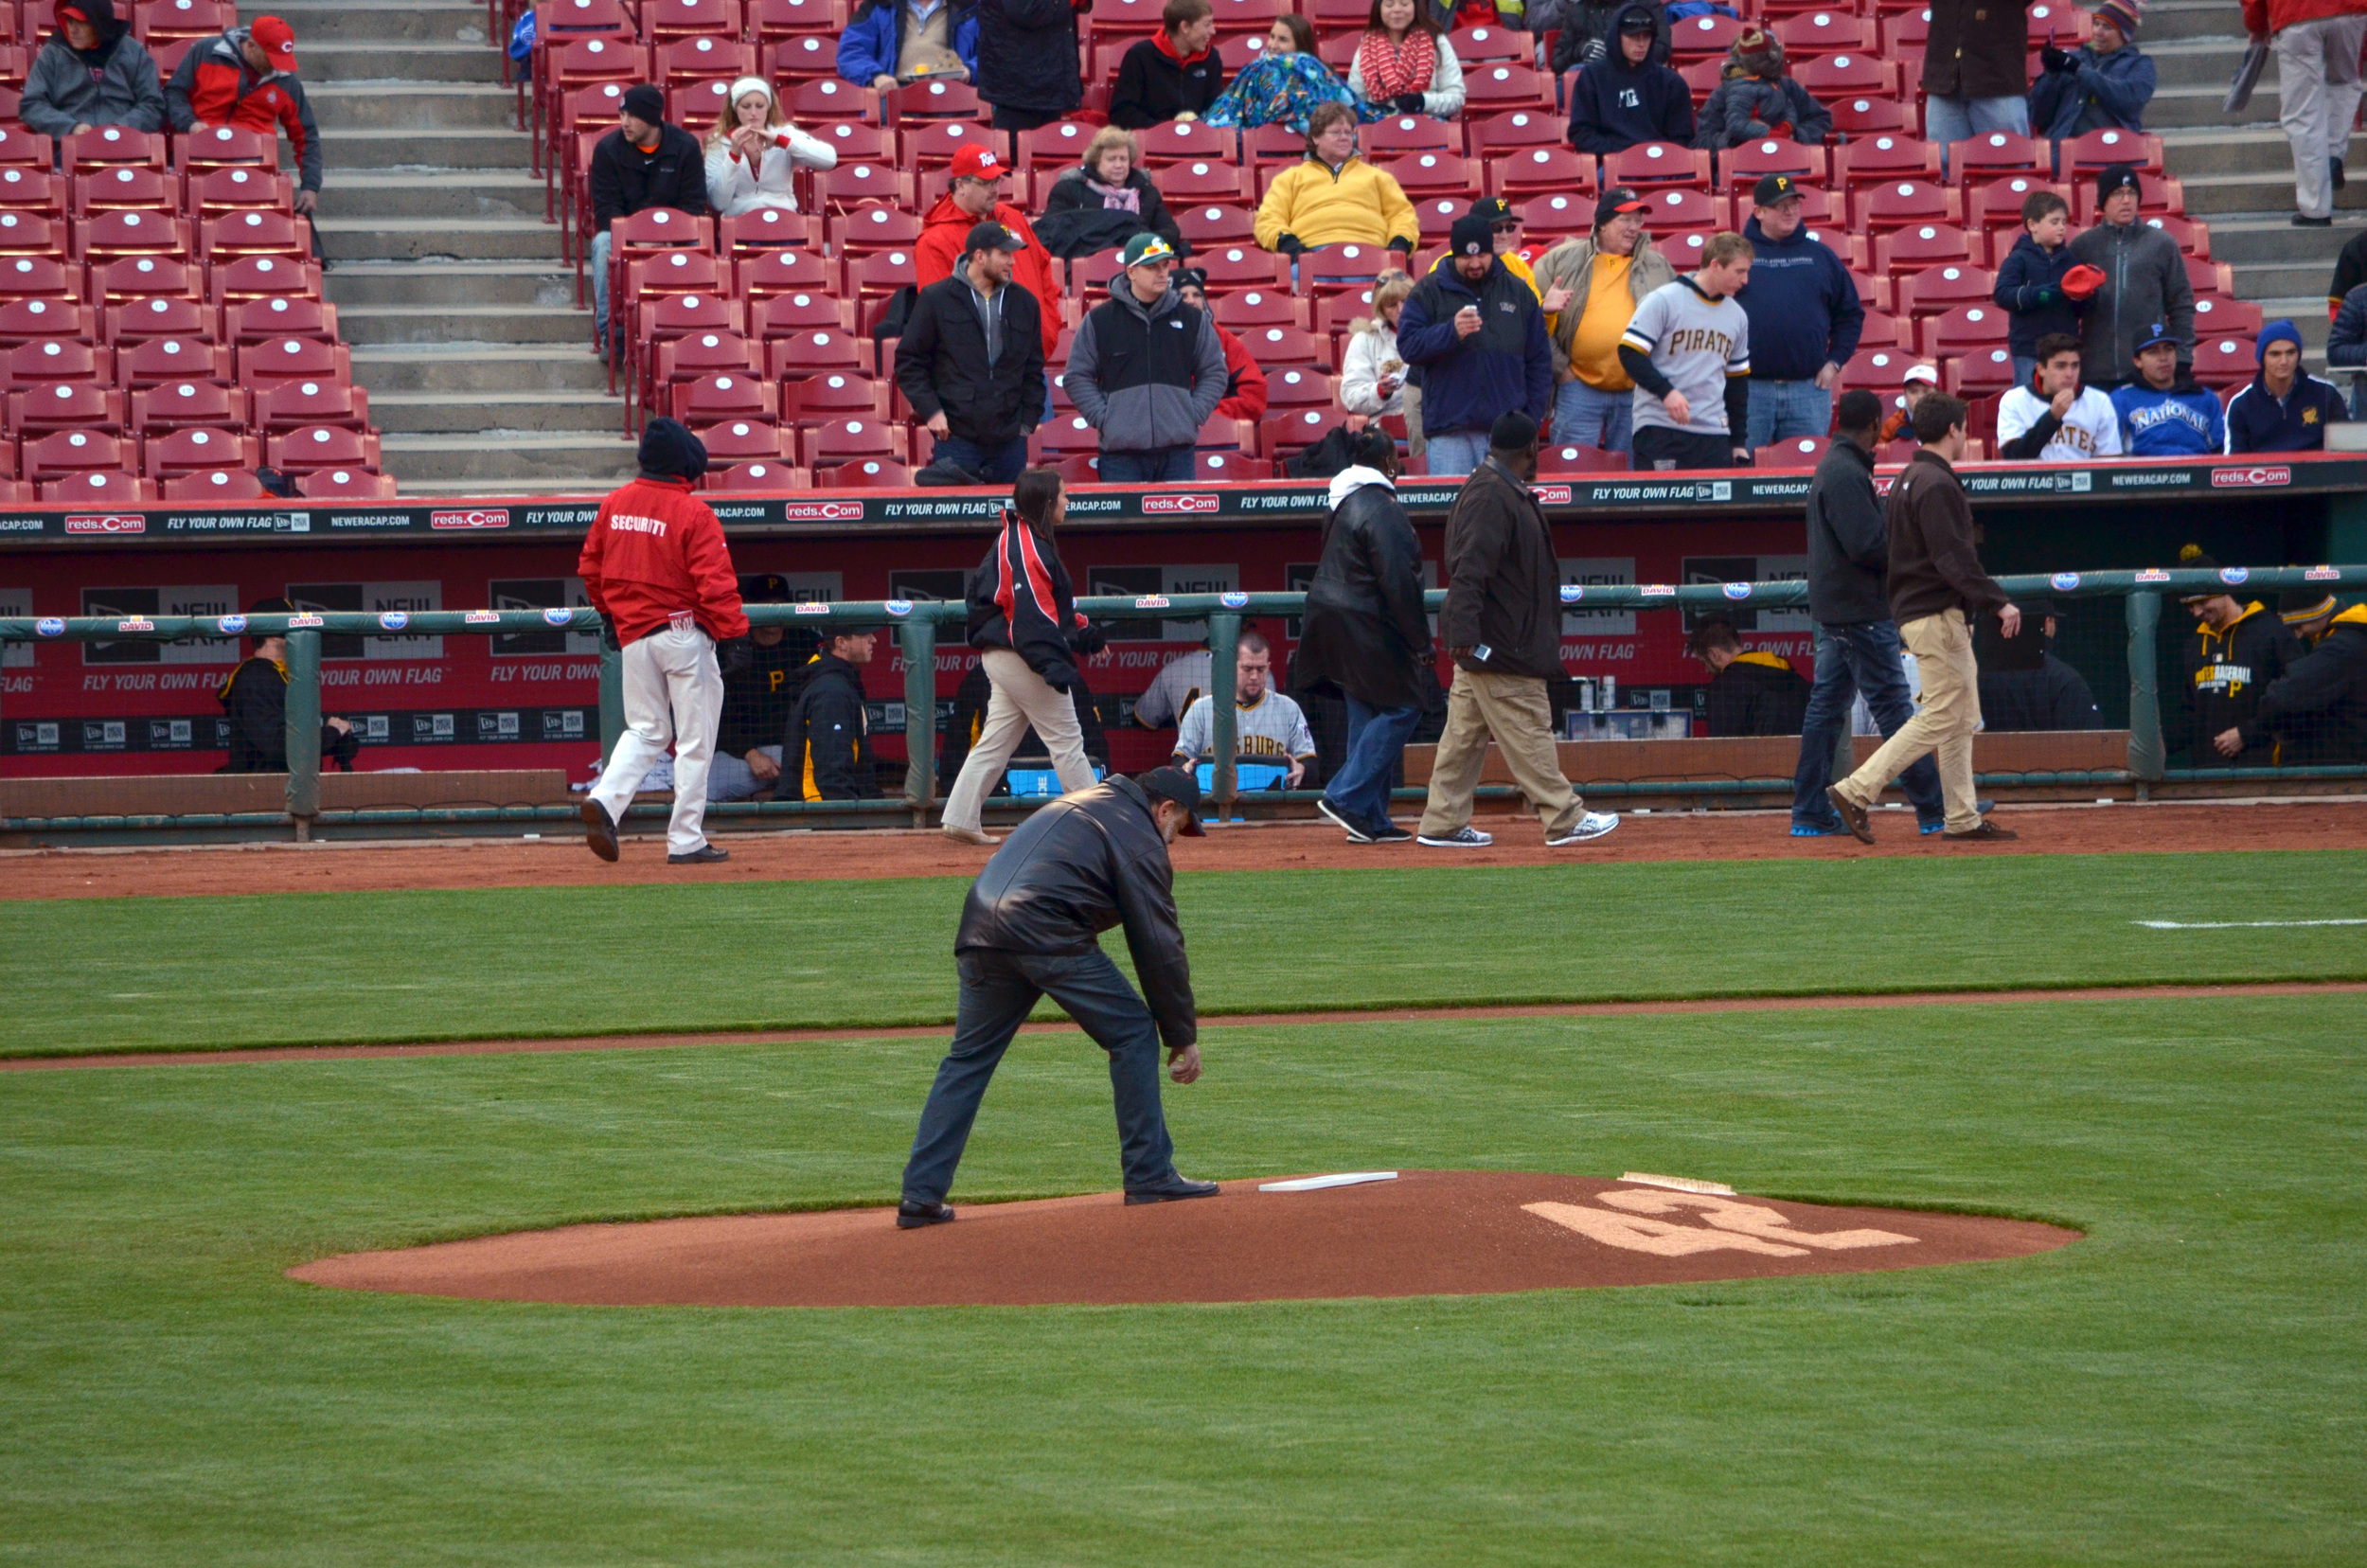 Clay Holland (Owner and President) placing opening game ball on pitcher's mound.